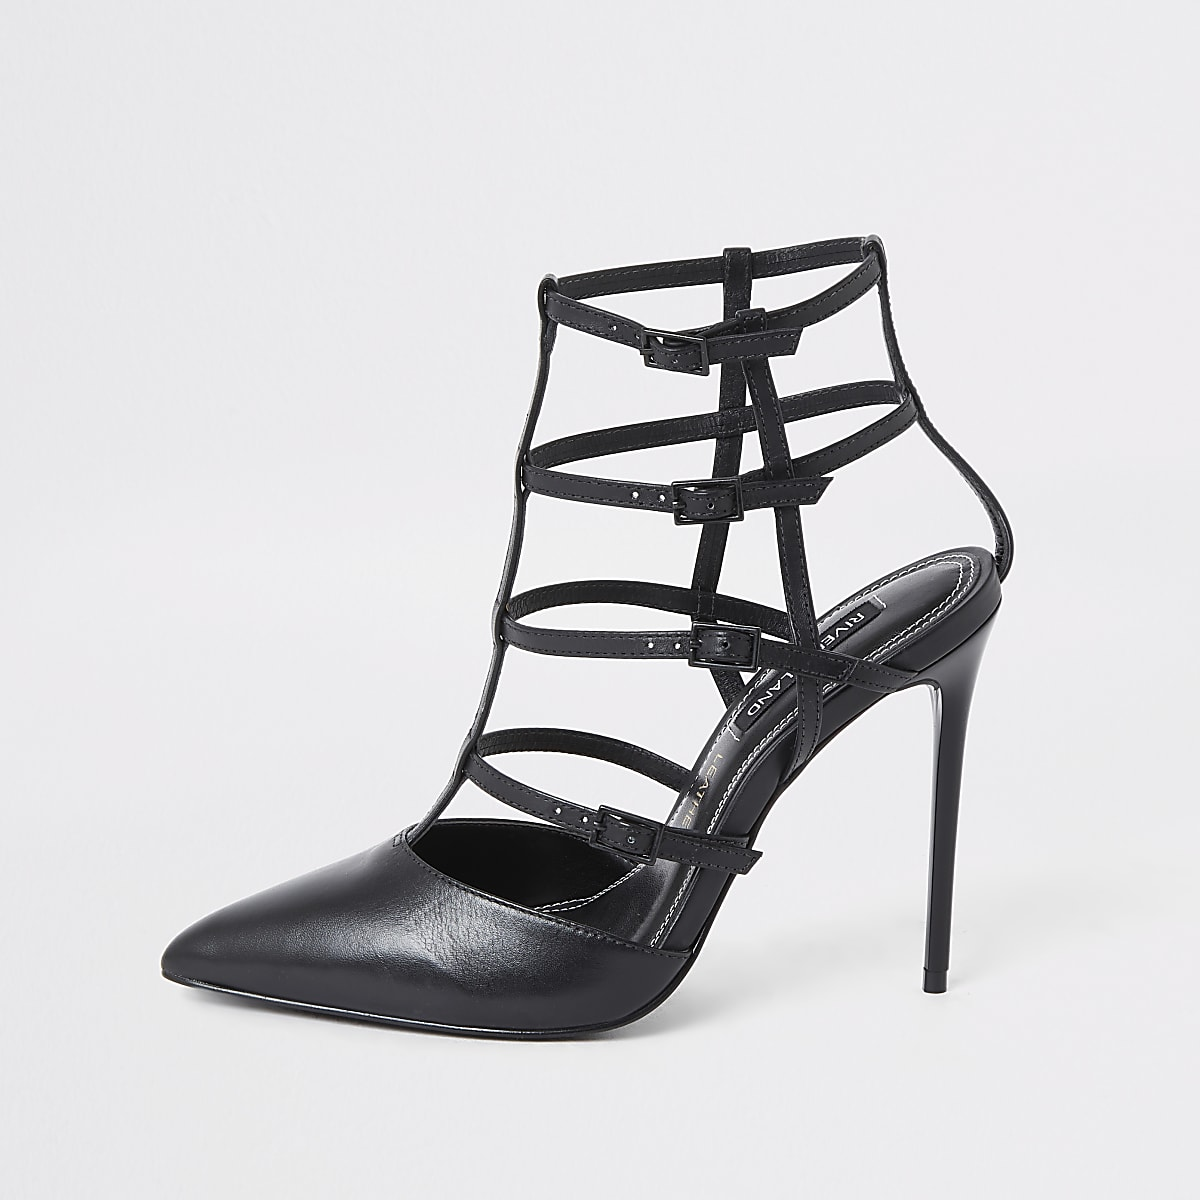 Black caged court shoe